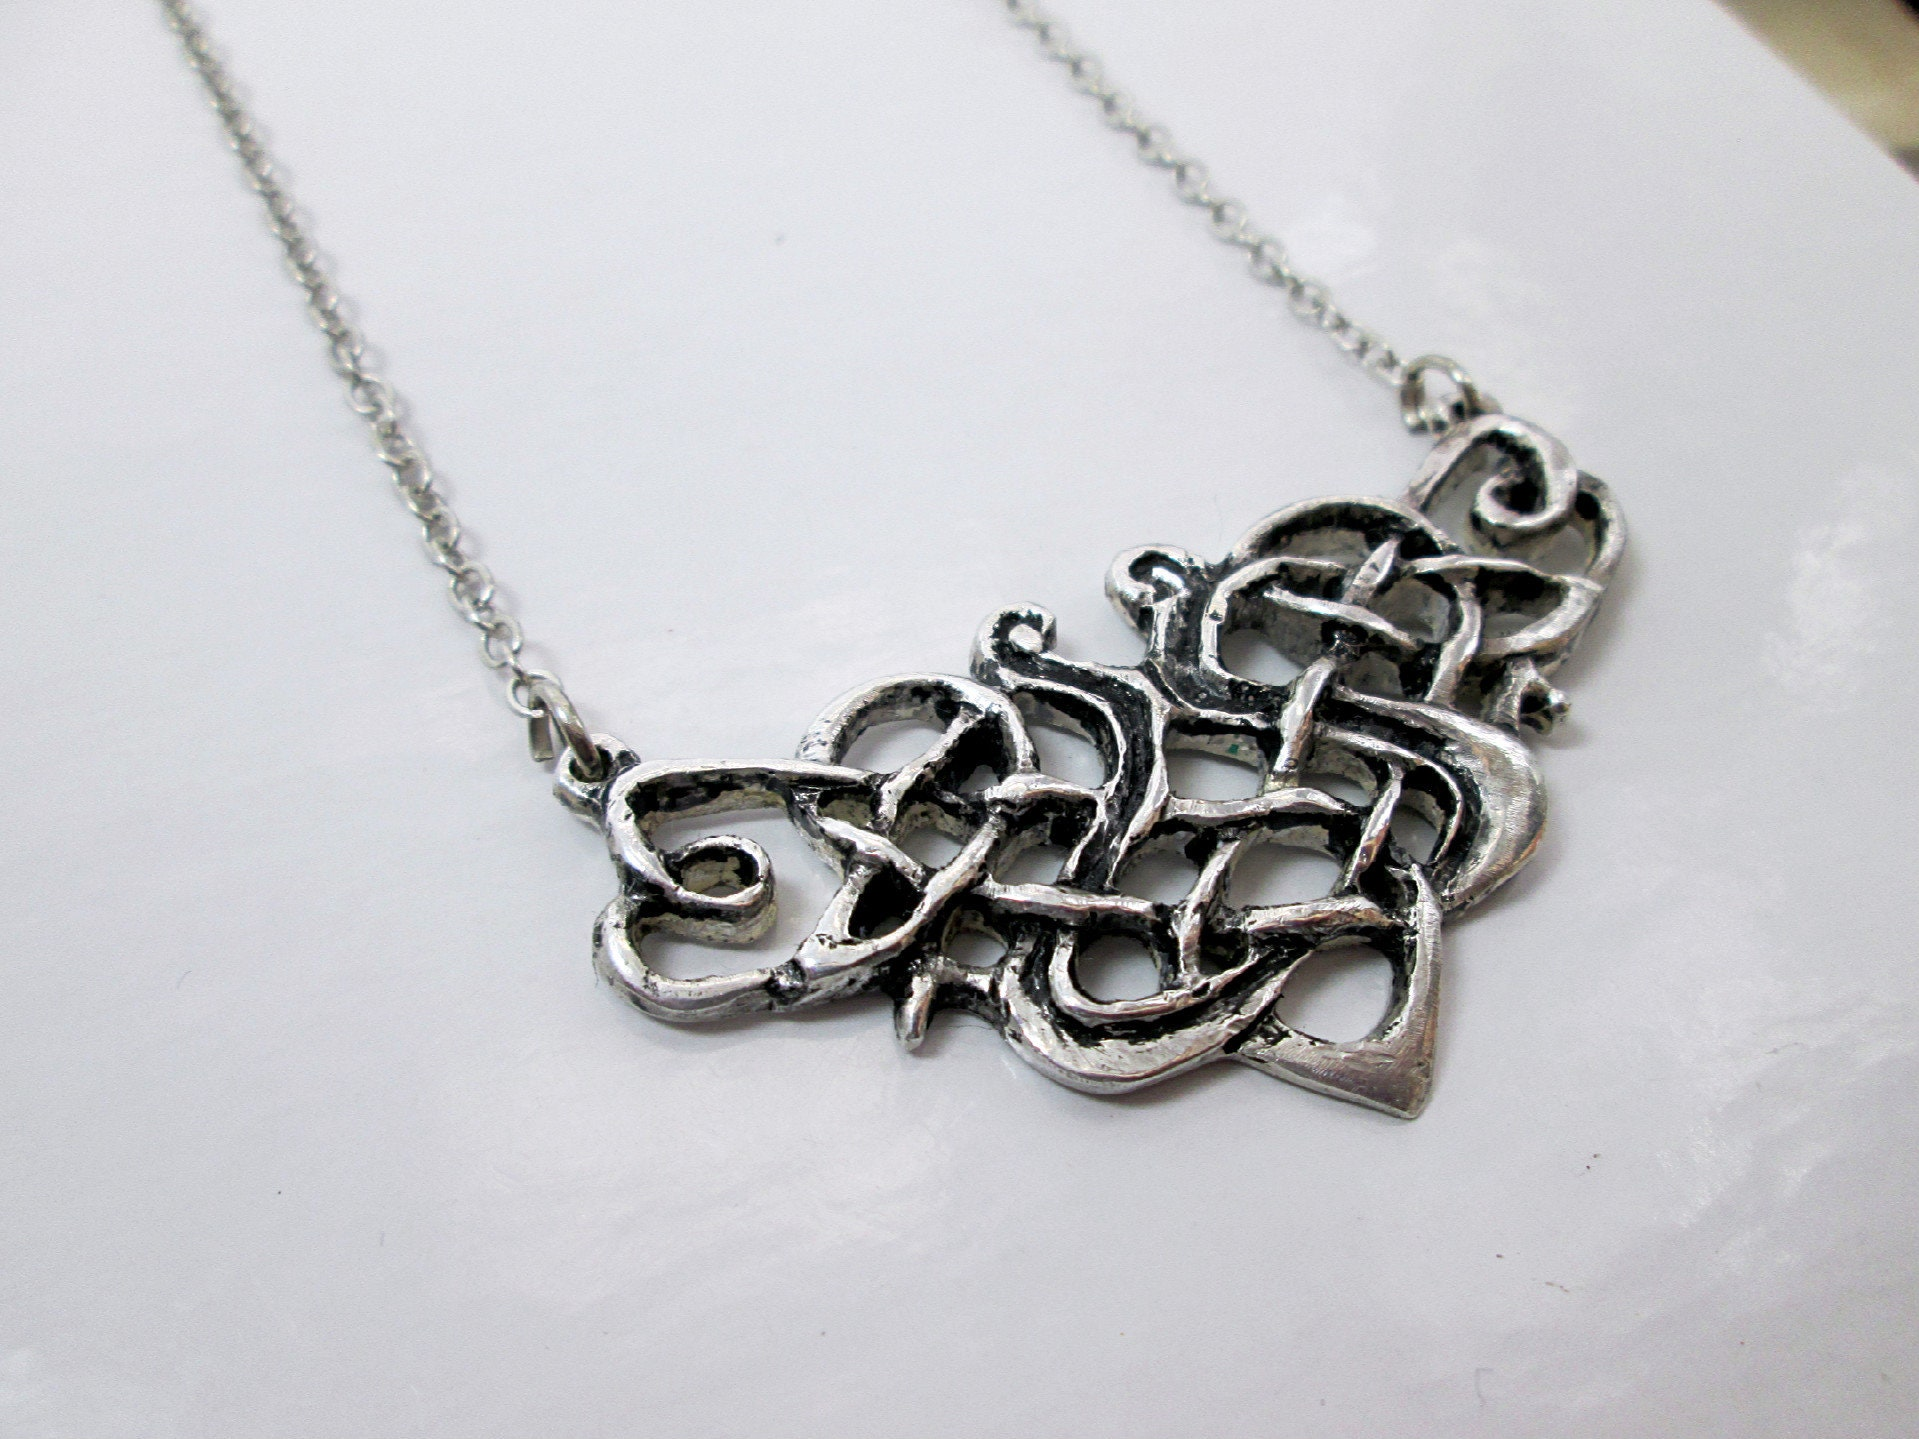 eb4464b0d Celtic Knot Necklace Norse Viking Medieval Jewelry Cosplay   Etsy